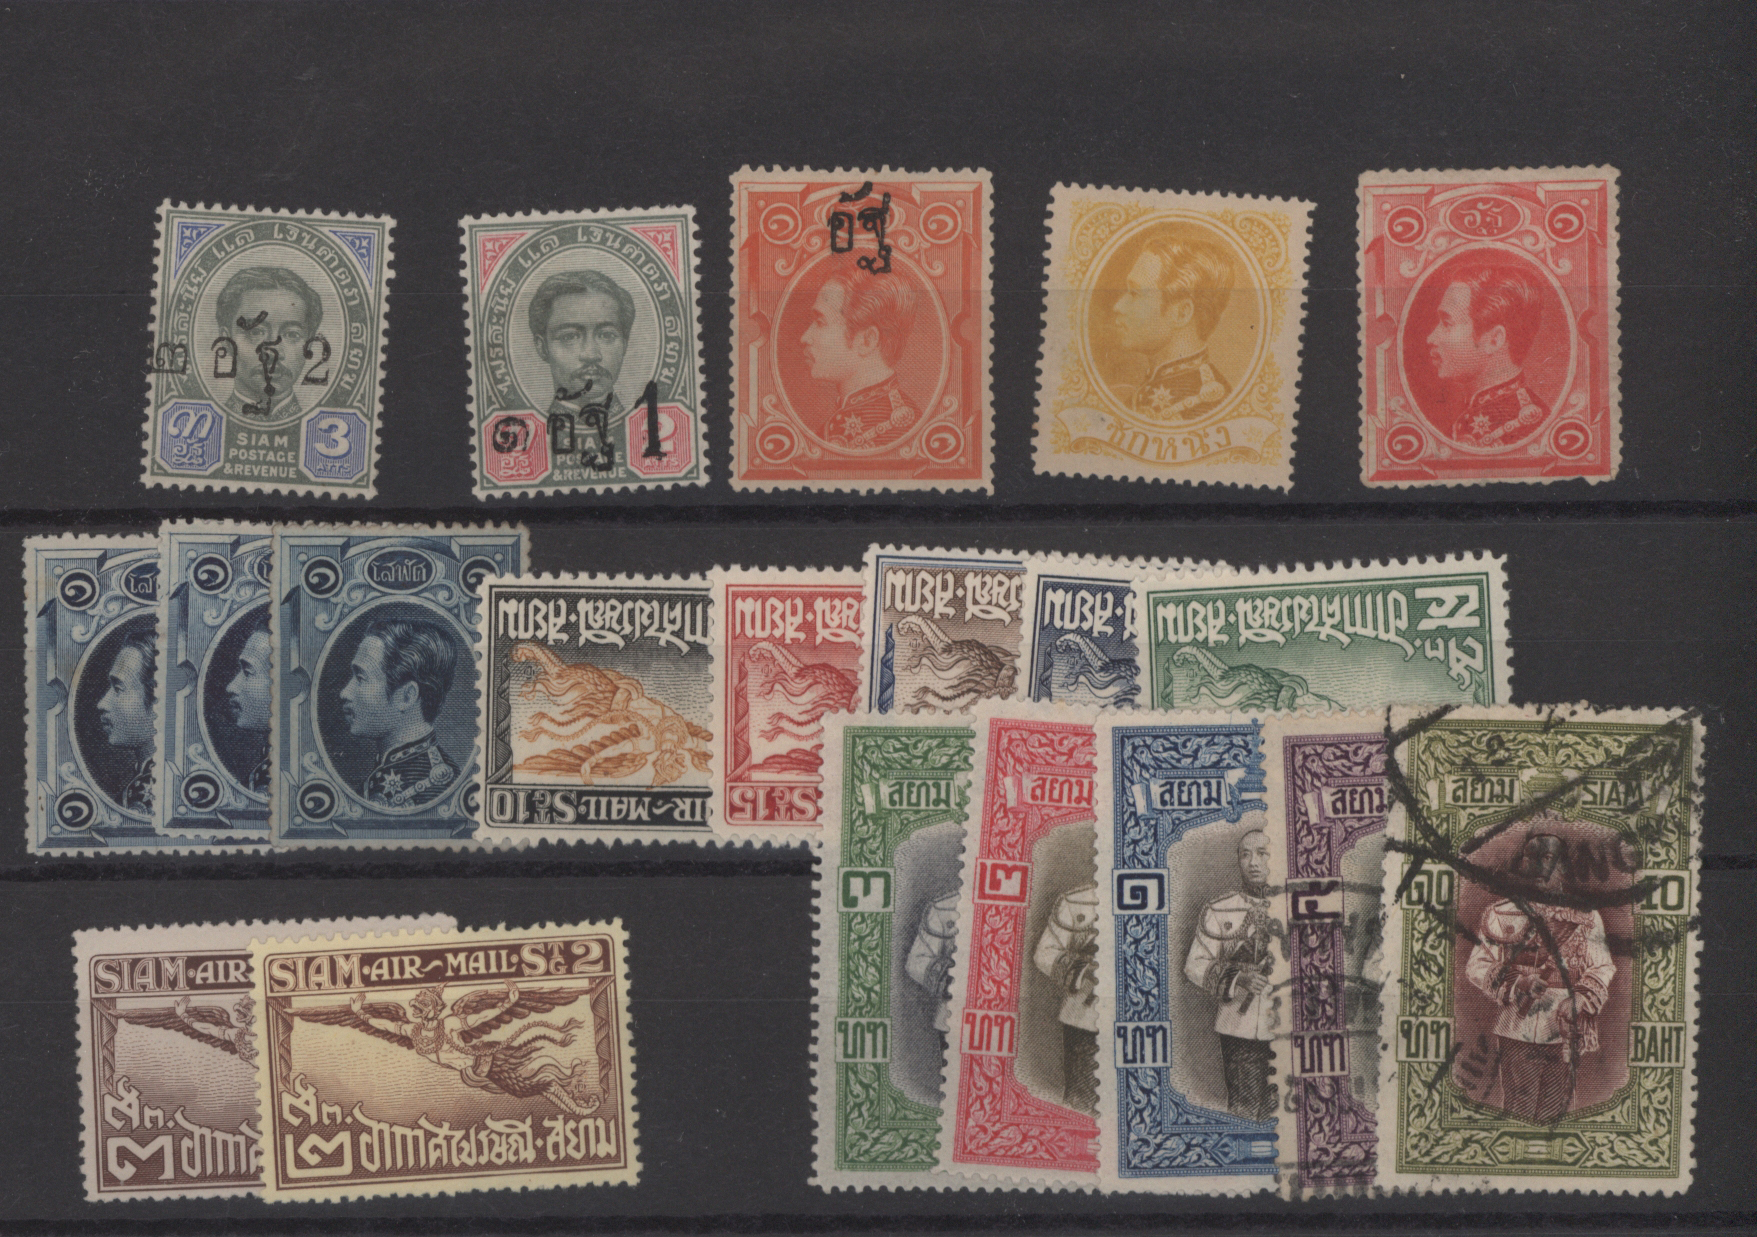 Lot 26110 - nachlässe  -  Auktionshaus Christoph Gärtner GmbH & Co. KG Sale #46 Gollcetions Germany - including the suplement